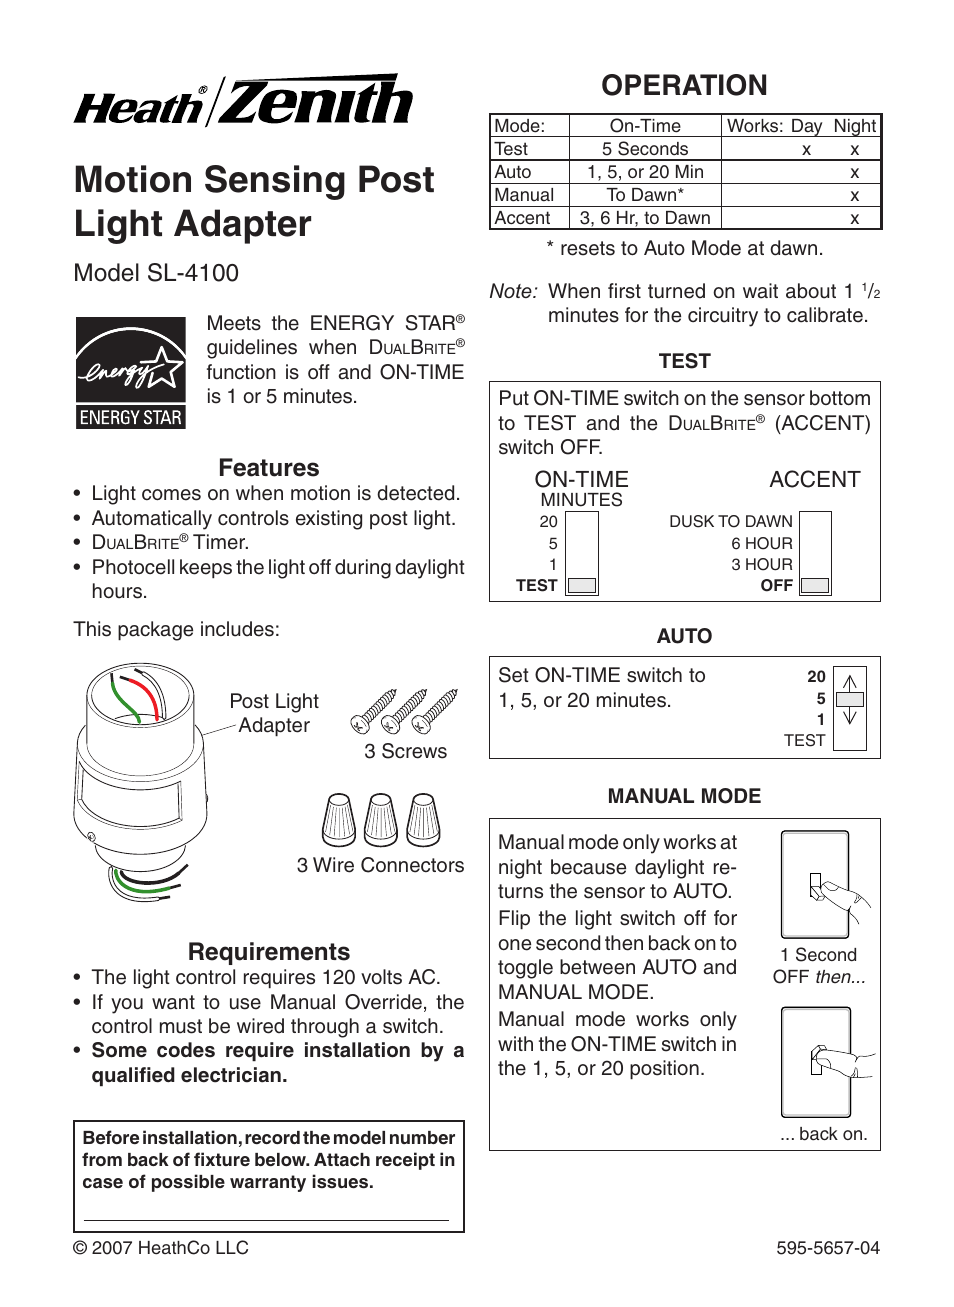 Heath Zenith Motion Sensing Post Light Adapter SL-4100 User Manual | 16  pages